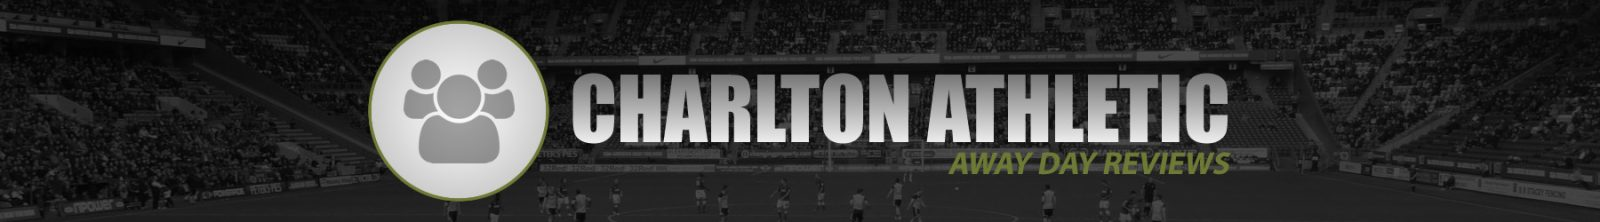 Review Charlton Athletic